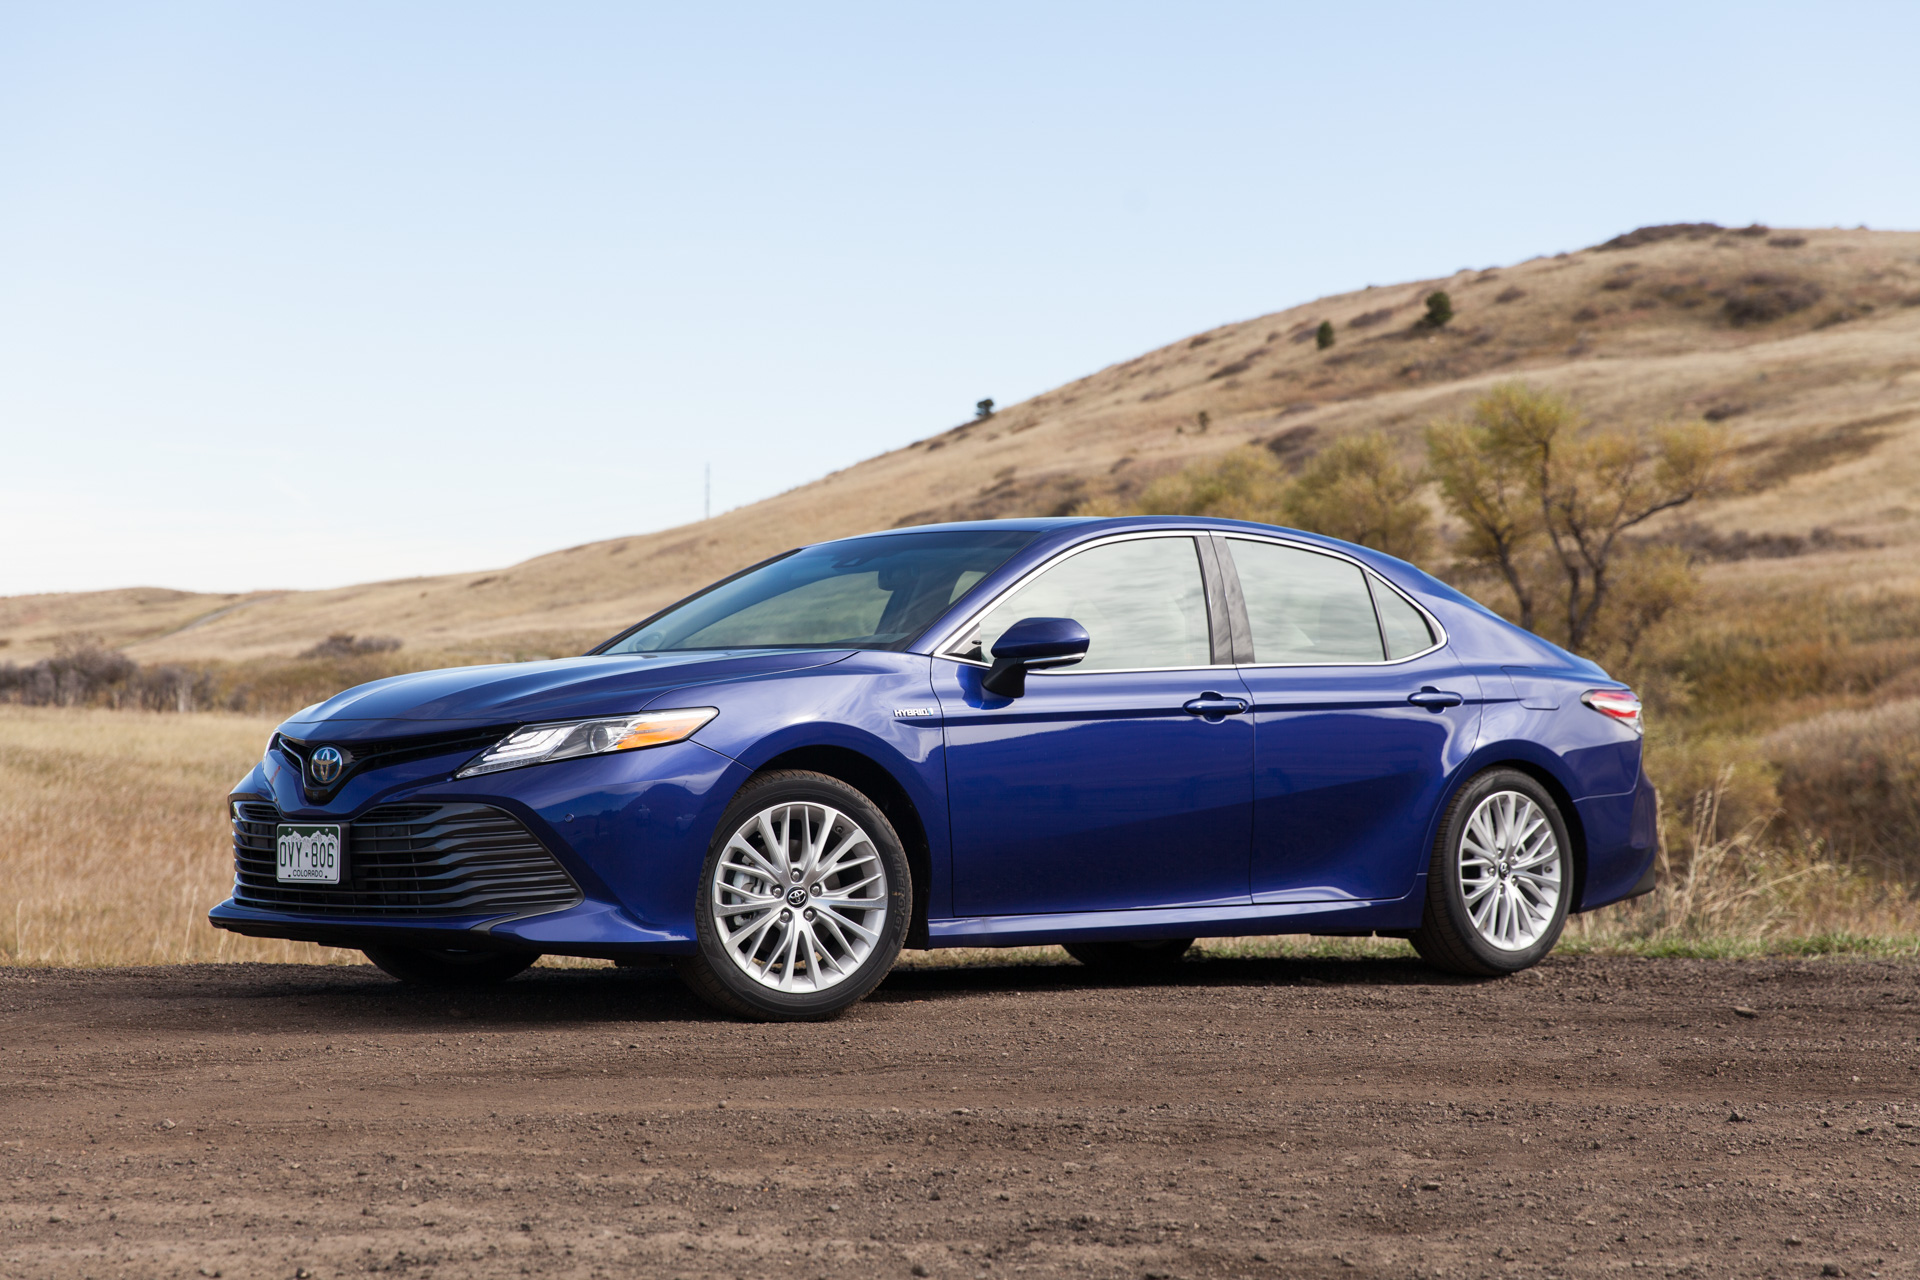 2018 Toyota Camry Hybrid Gas-mileage Review: Going The